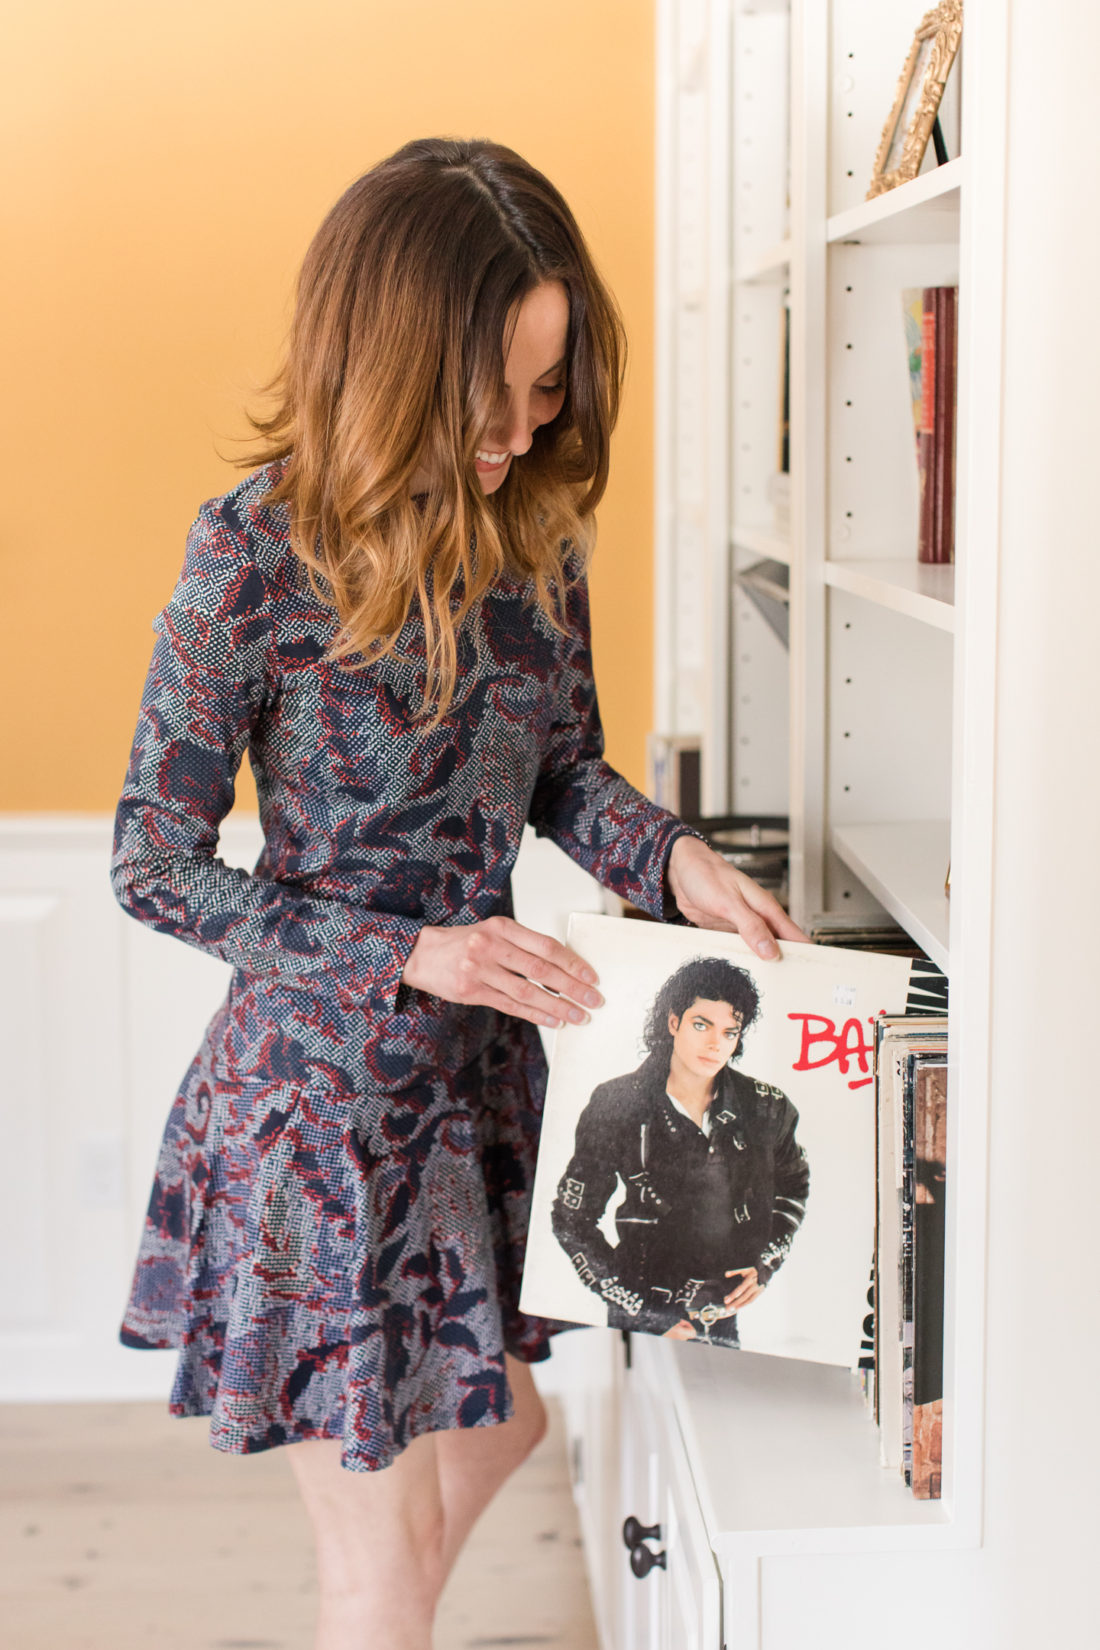 Eva Amurri Martino chooses a record from her record collection